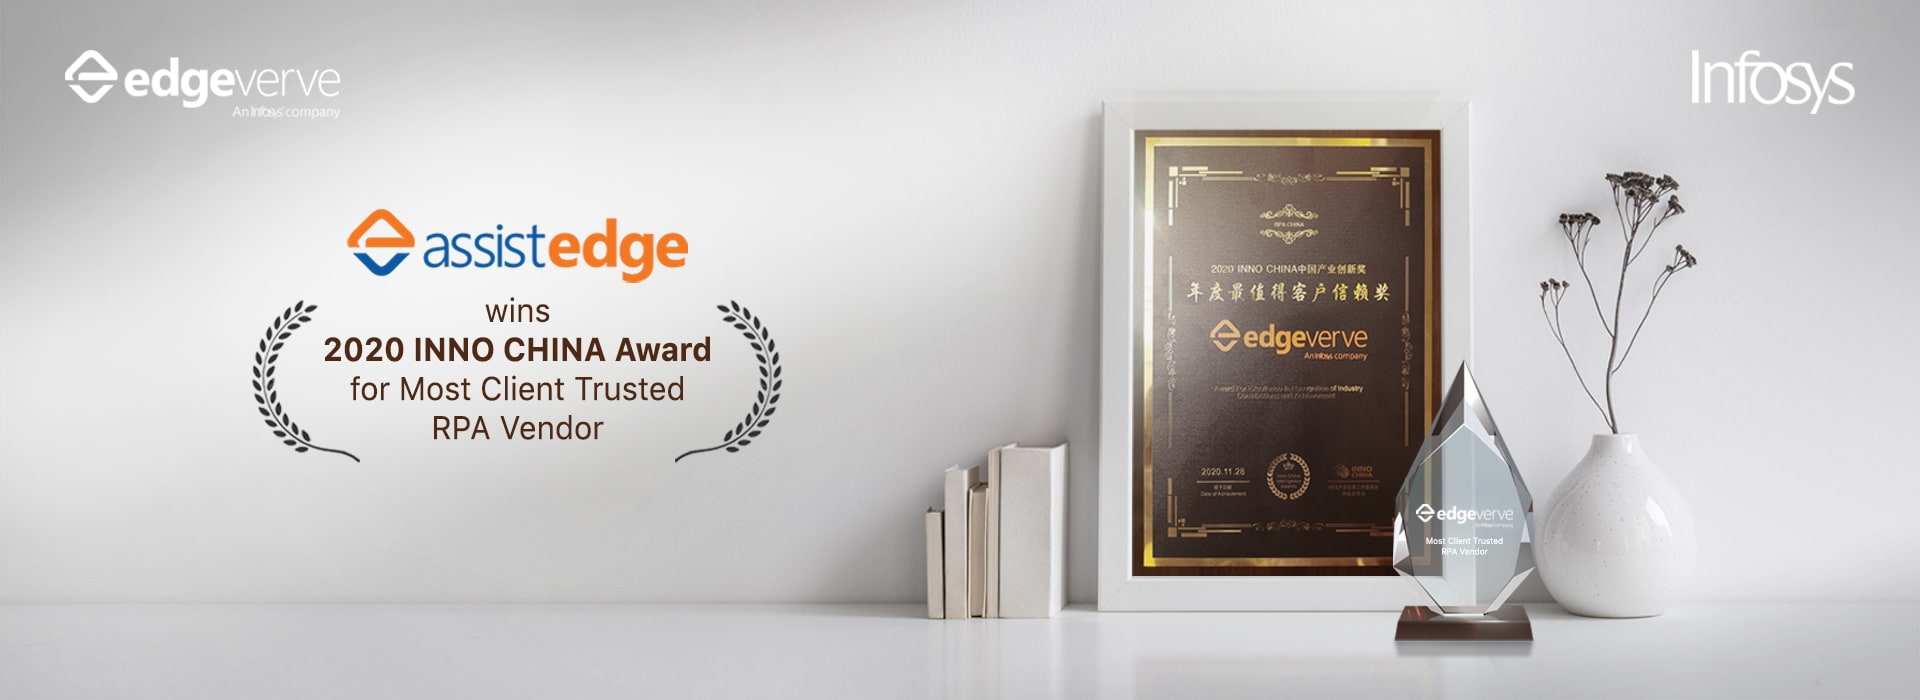 AssistEdge-China-Summer-Award-bgs